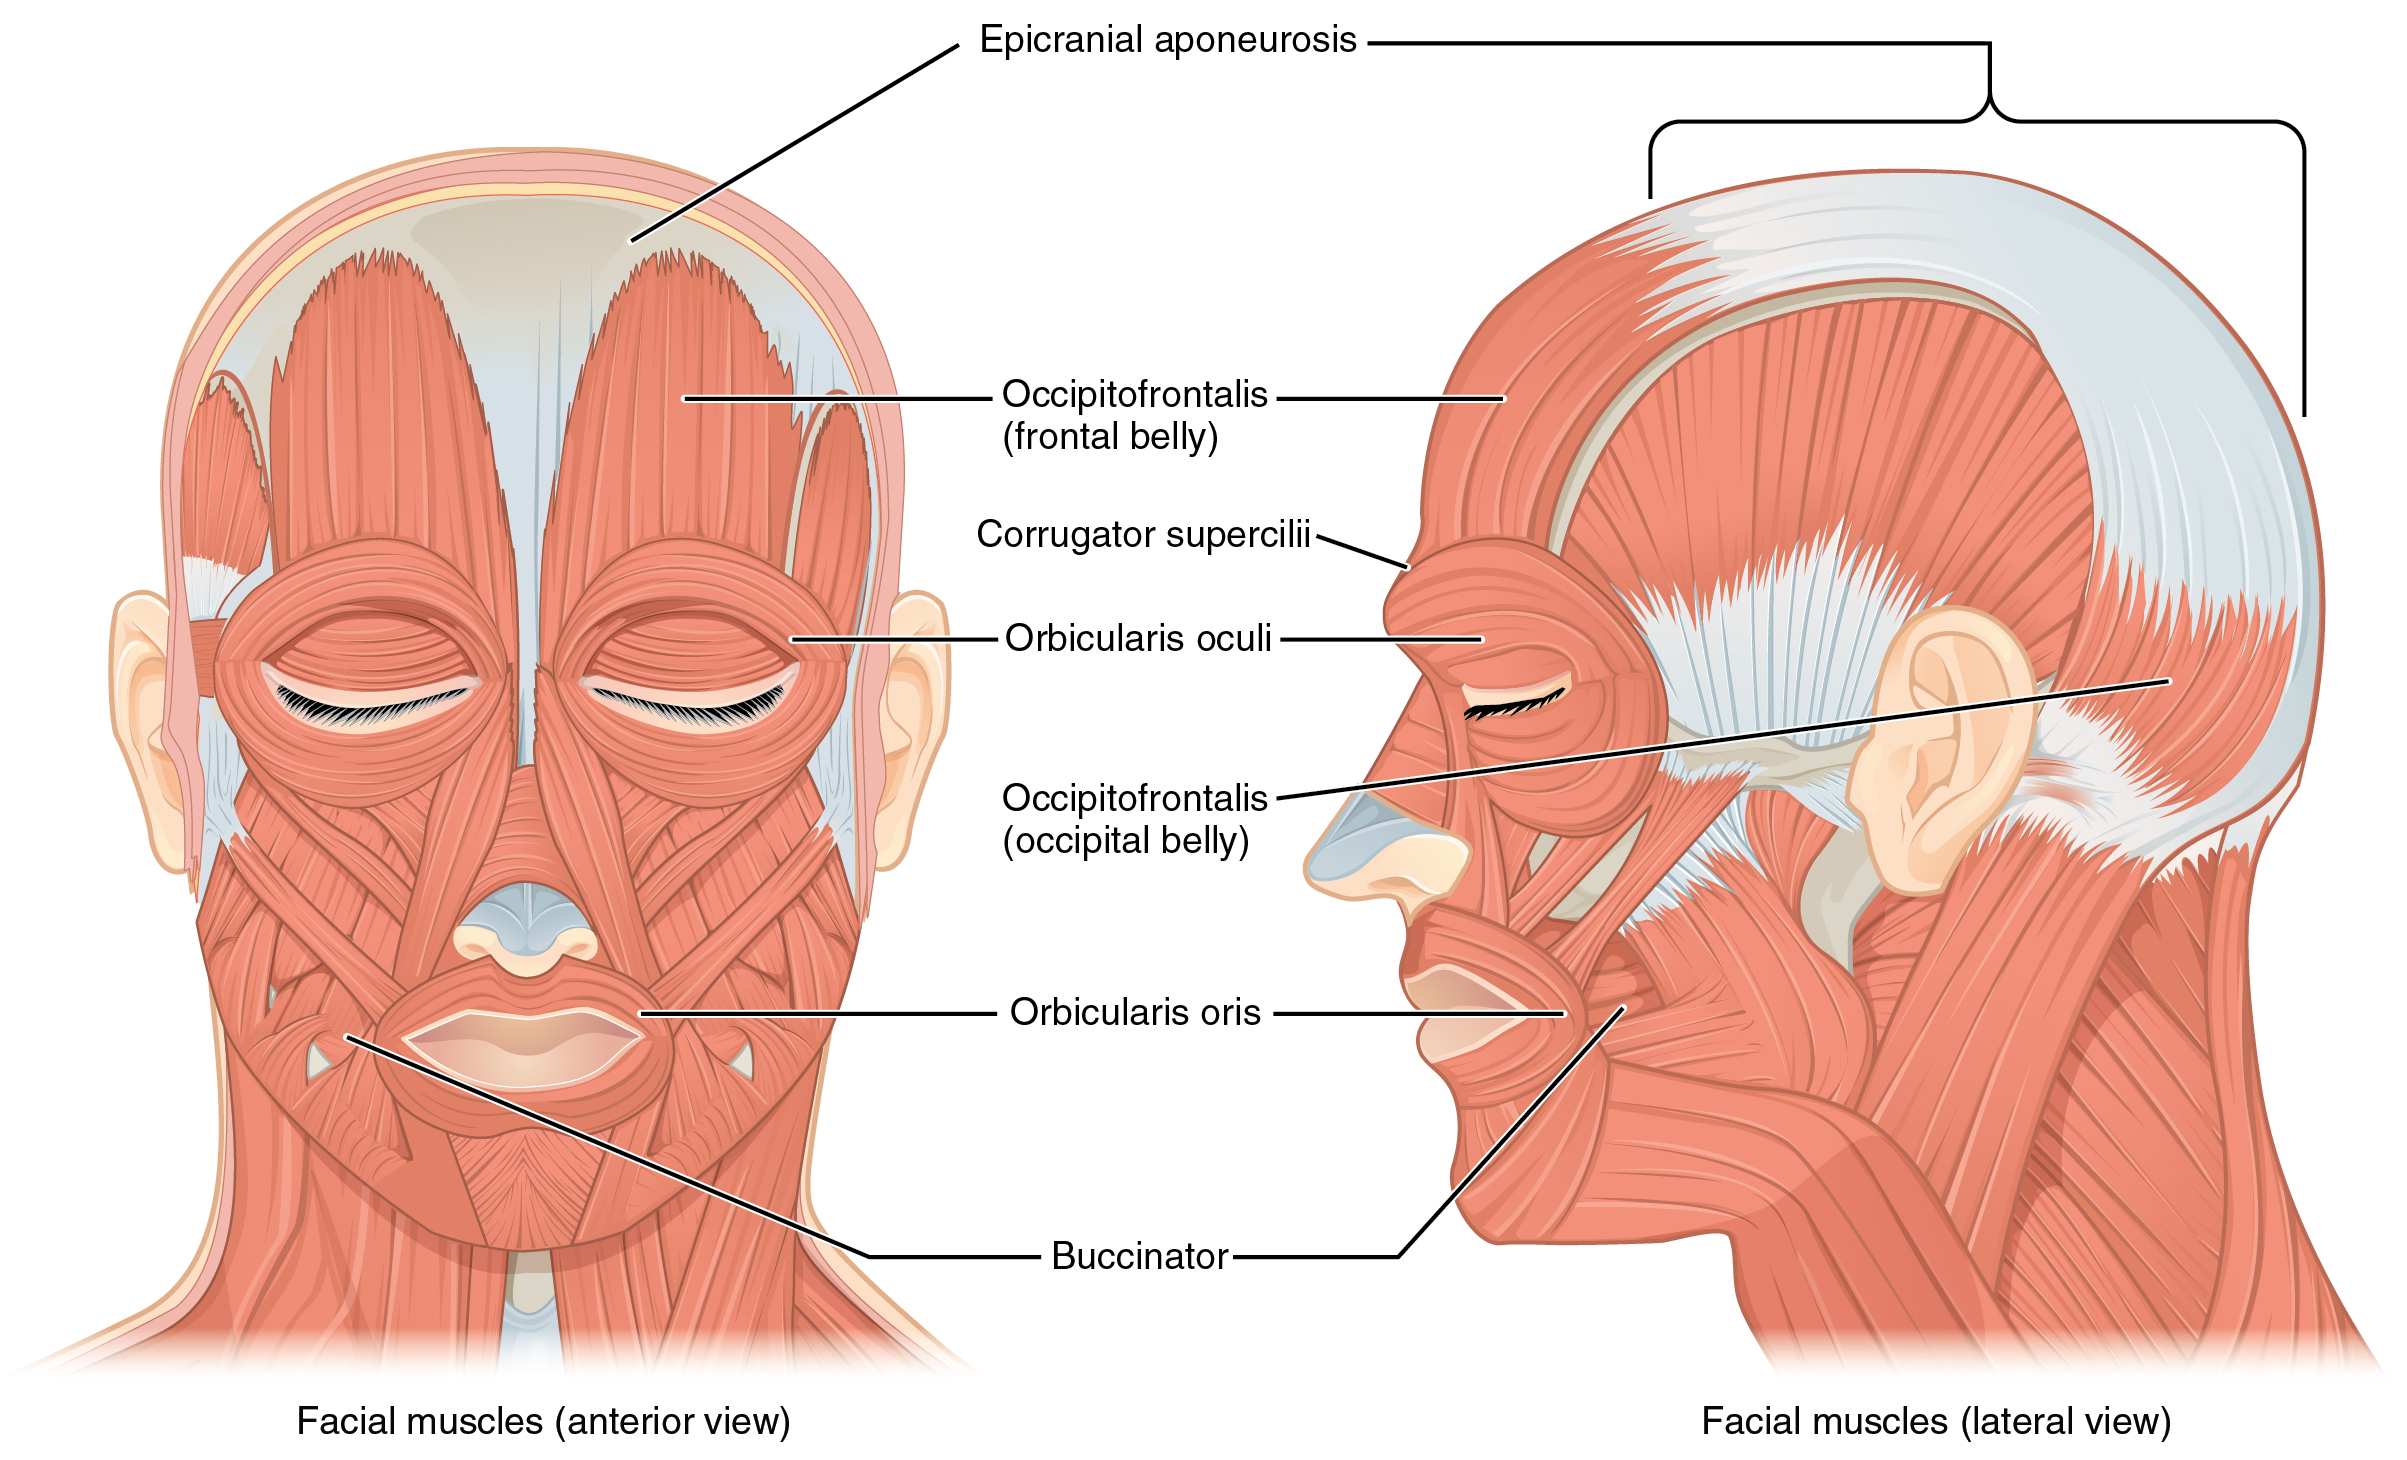 113 Axial Muscles Of The Head Neck And Back Anatomy Physiology Fac Compressor Wiring Diagram 150 Left Panel In This Figure Shows Anterior View Facial